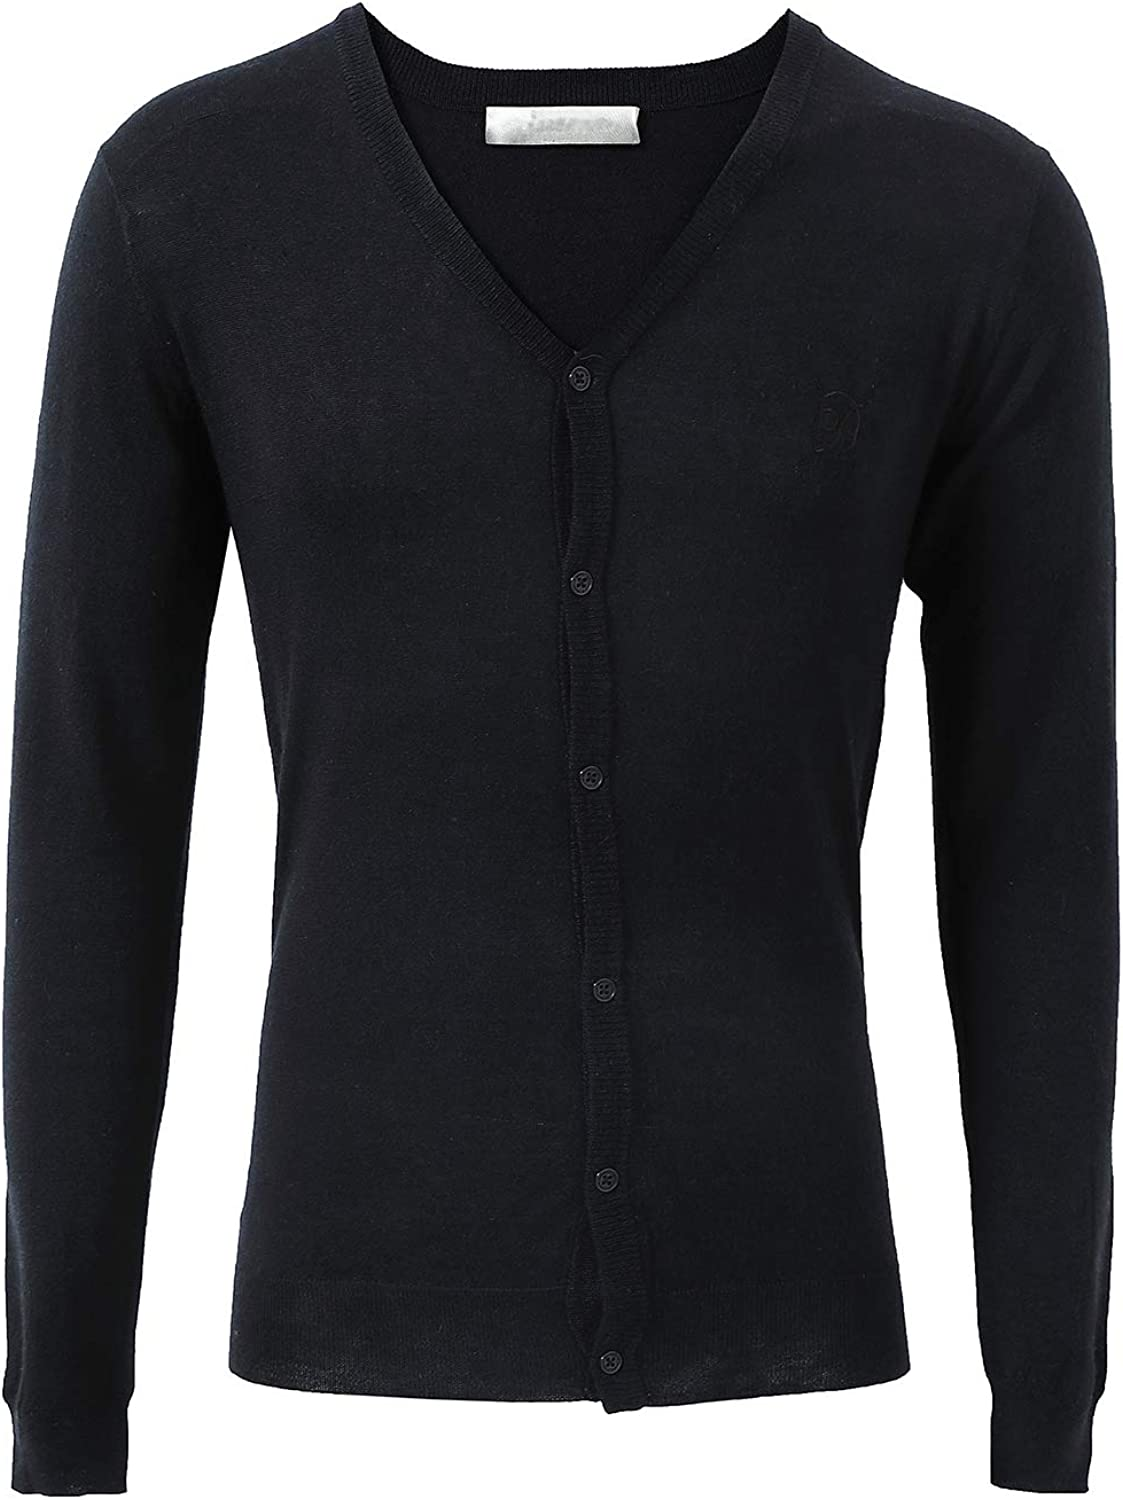 Escalier Men's Casual Slim Fit Lightweight Cardigan Sweater V-Neck Long Sleeve Button-Down Basic Sweaters